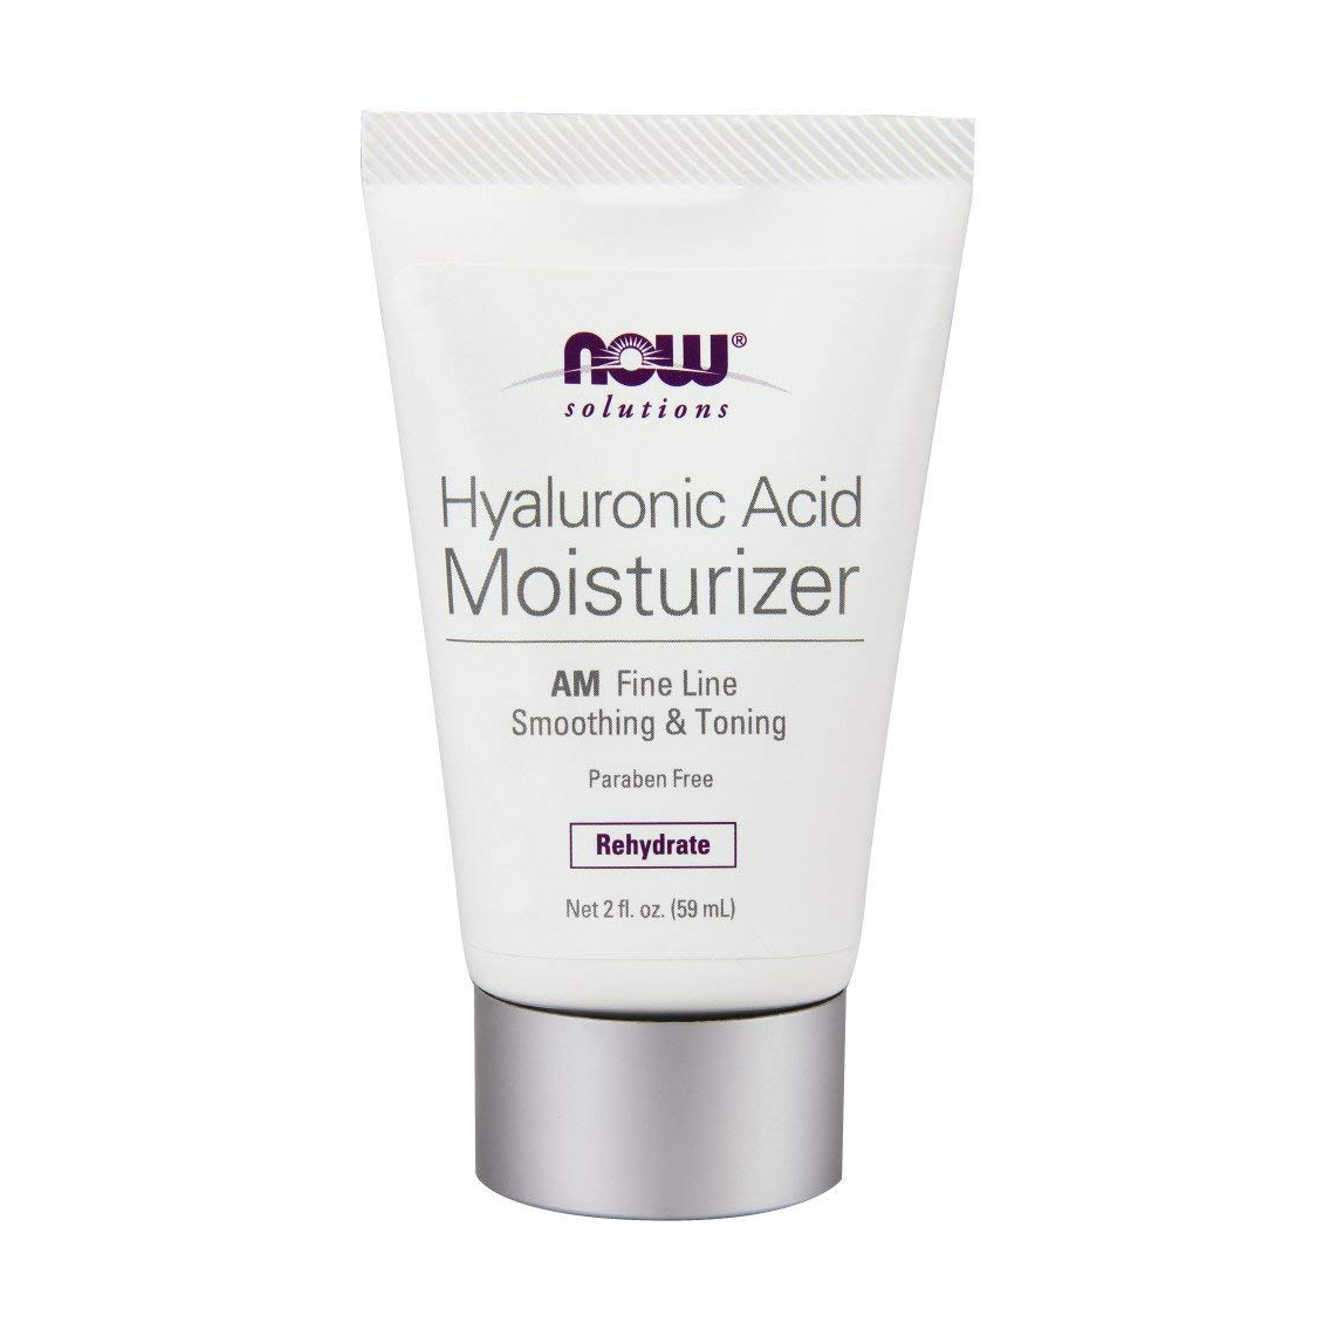 HYALURONIC ACID MOISTURIZER 59ml